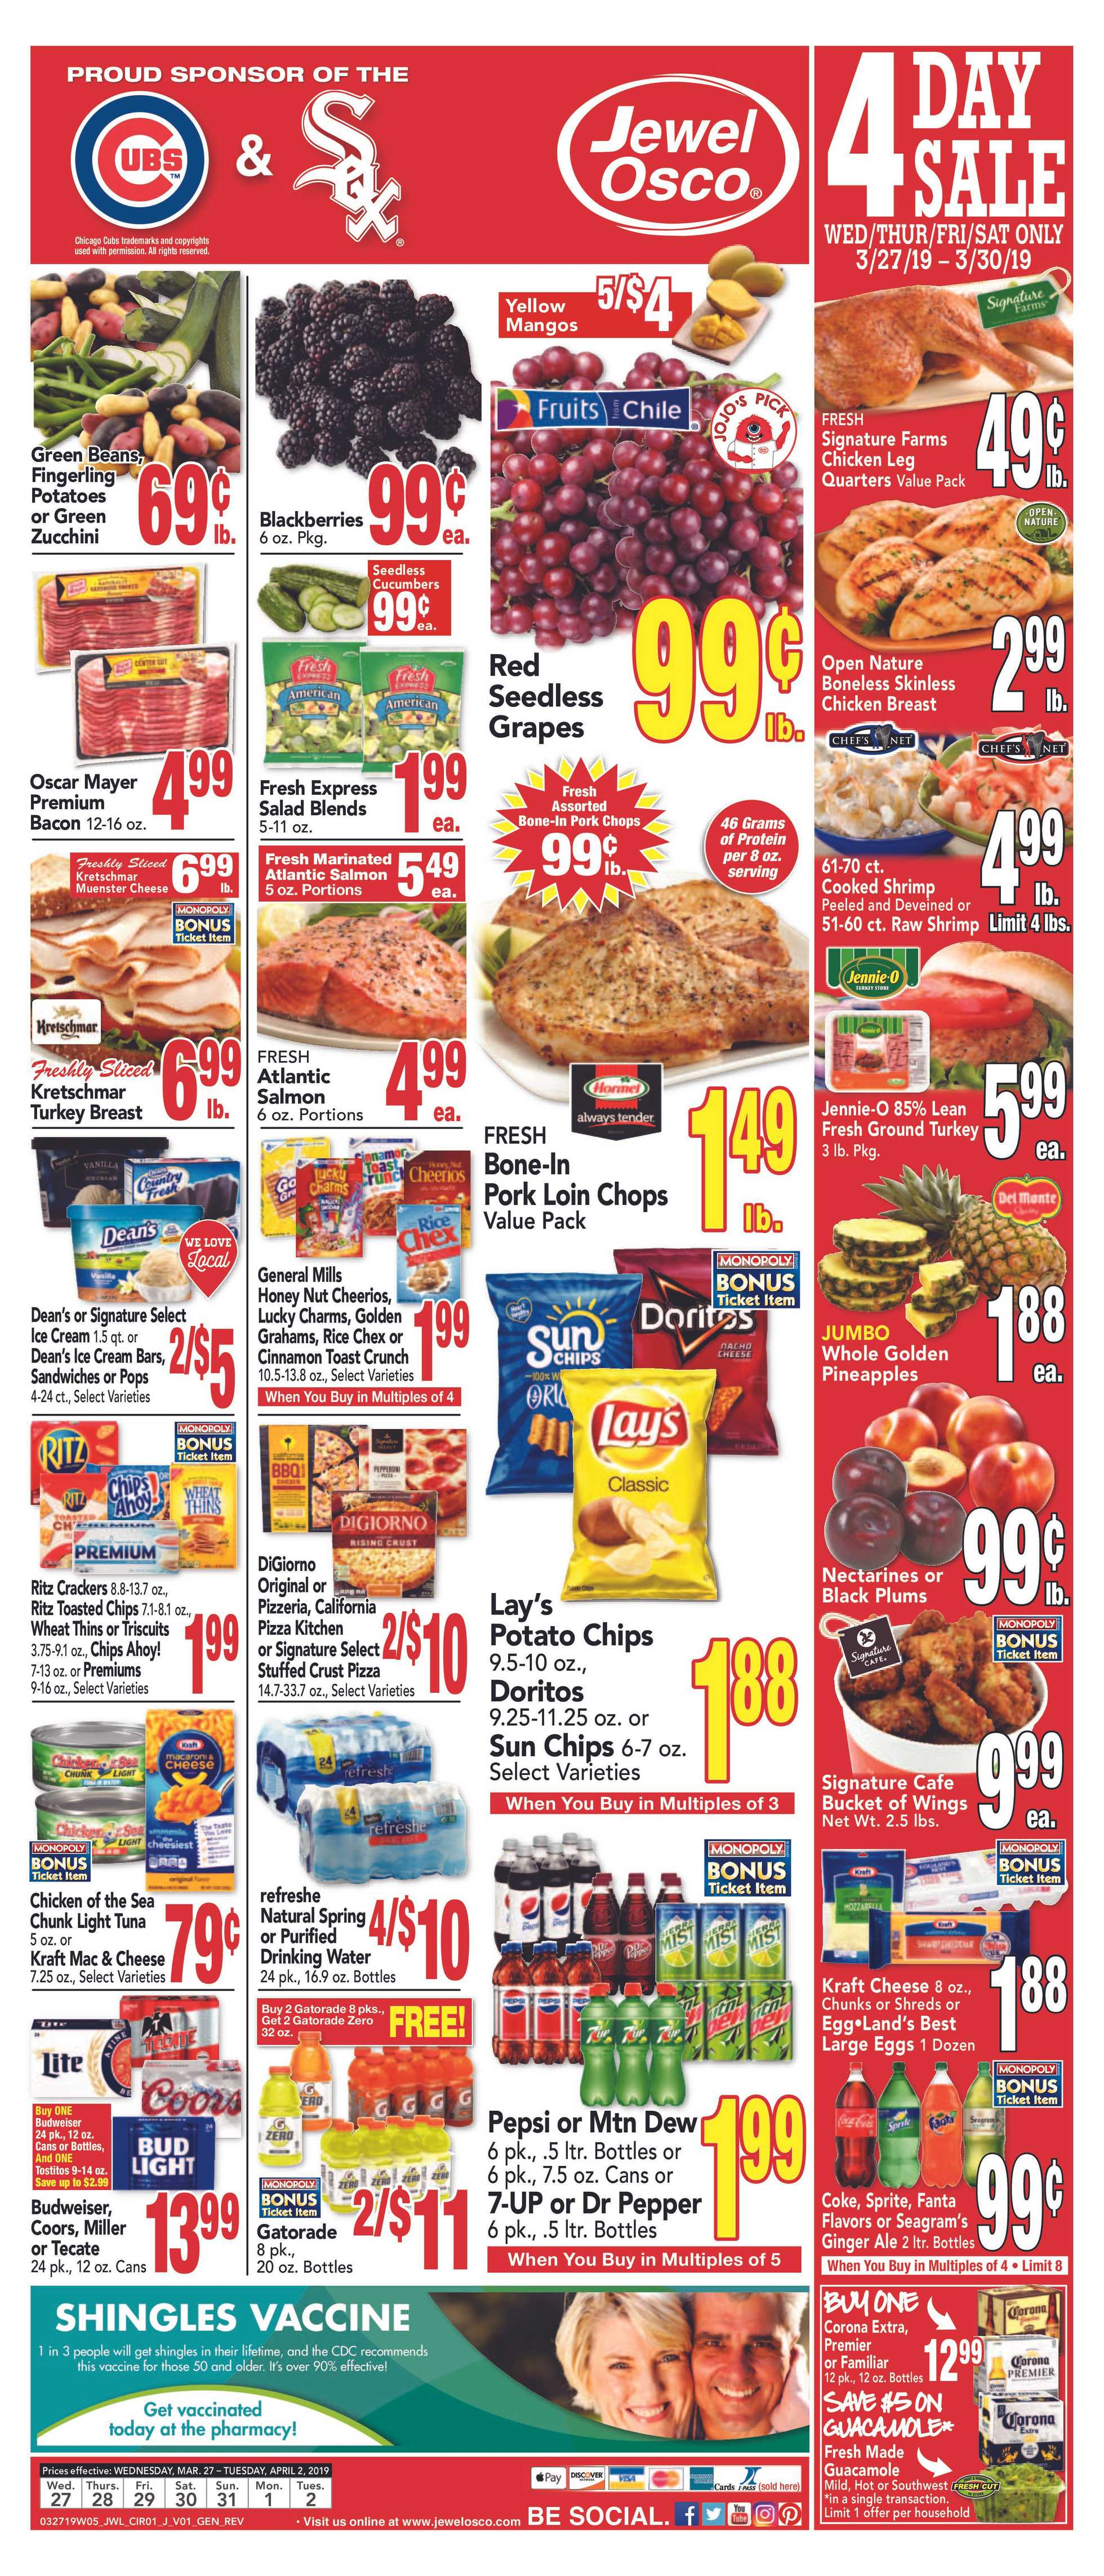 Jewel Osco - deals are valid from 03/27/19 to 04/02/19 - page 3.